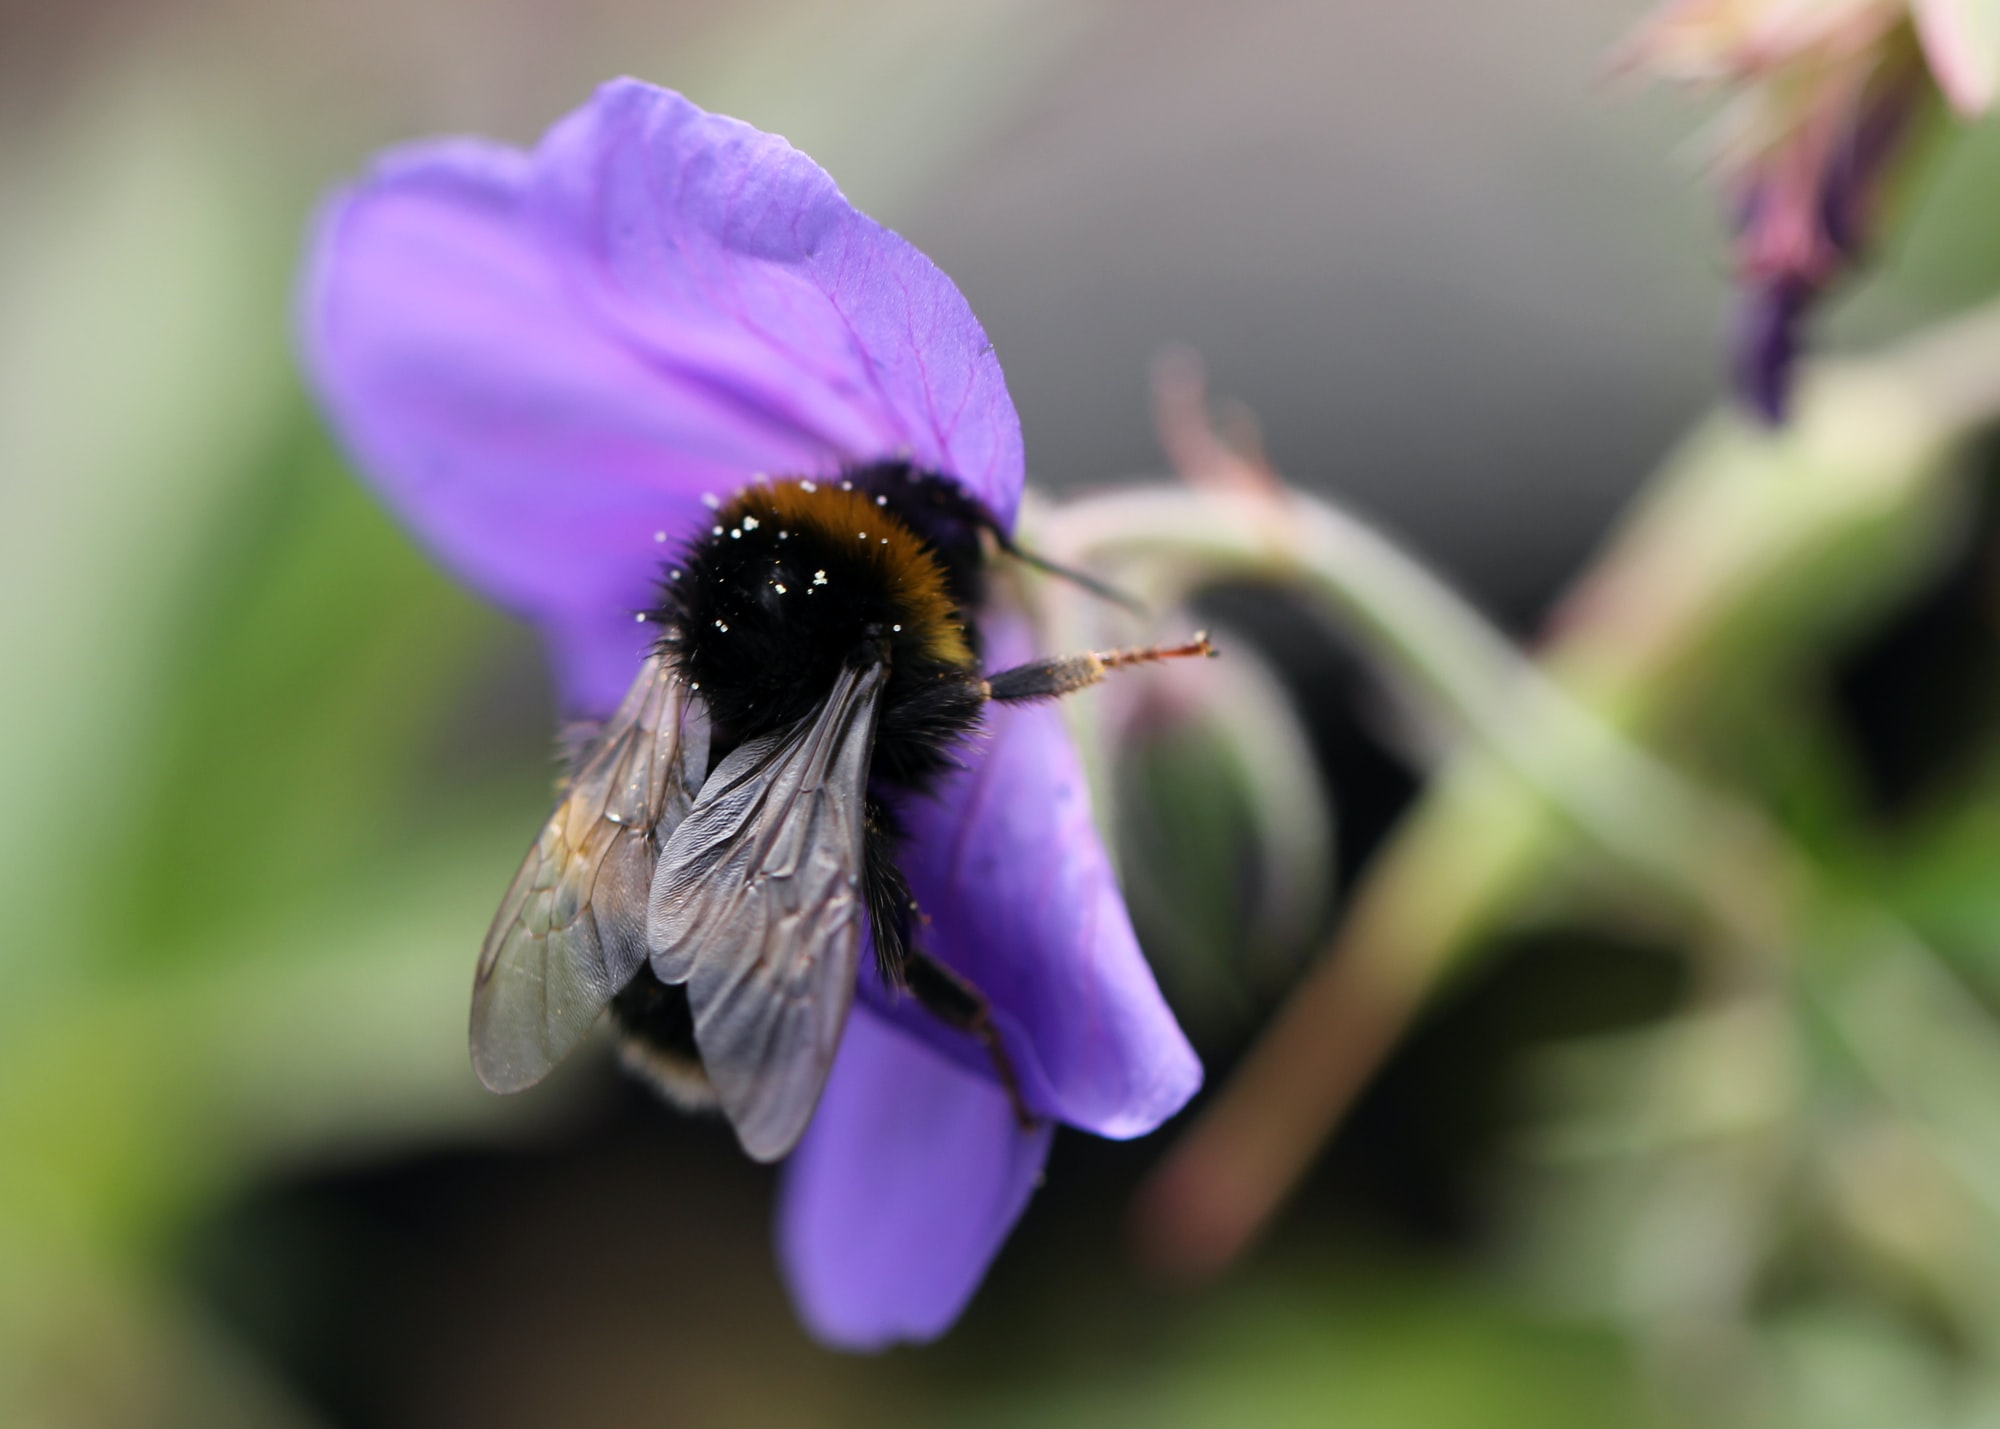 The problem with agriculture: biodiversity & pesticides